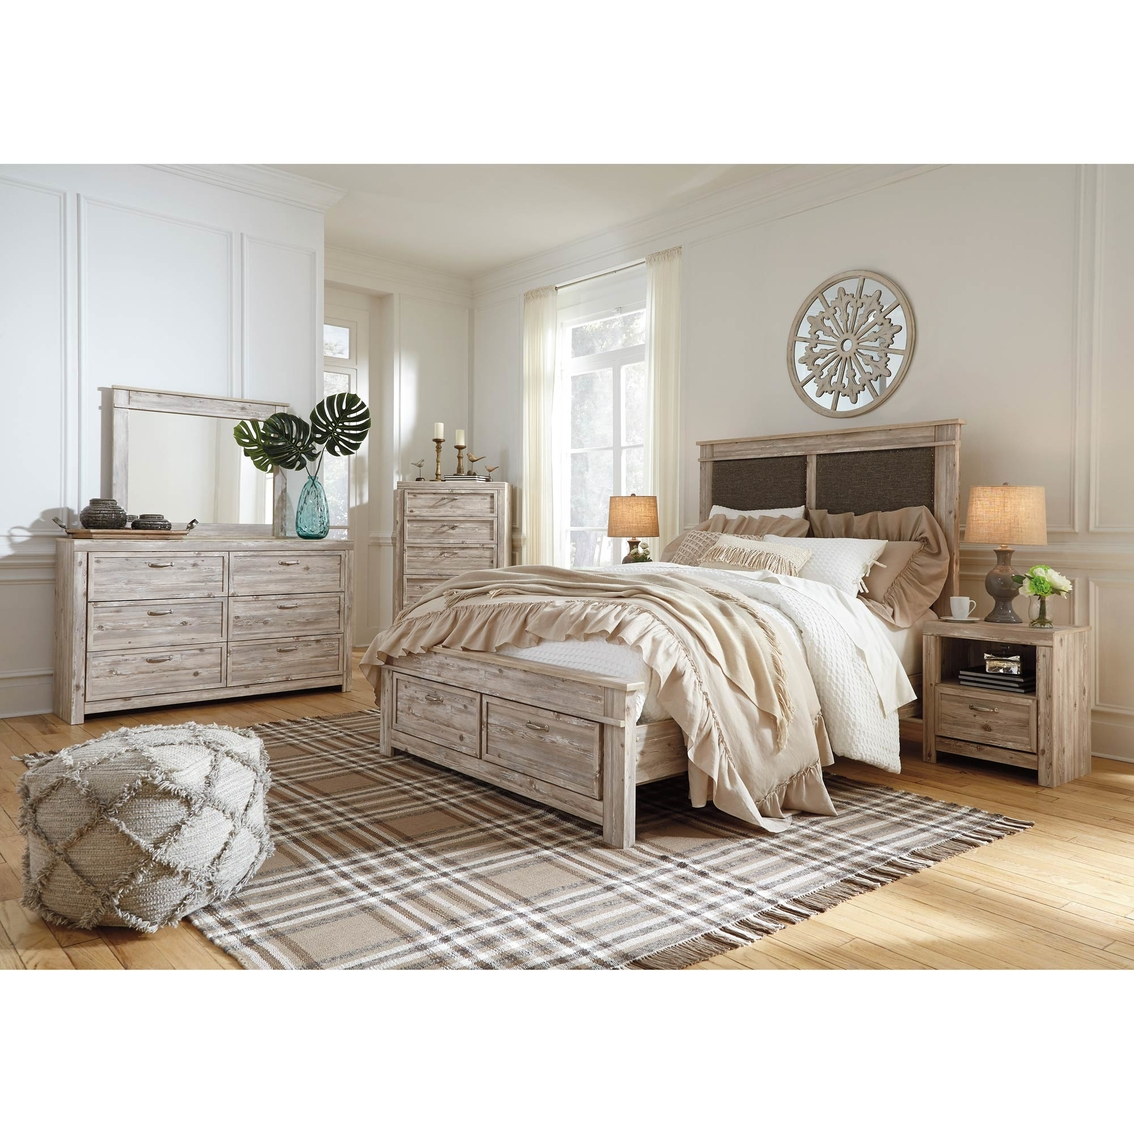 Benchcraft Willabry Panel Bed With Storage 5 Pc. Set | Bedroom Sets ...